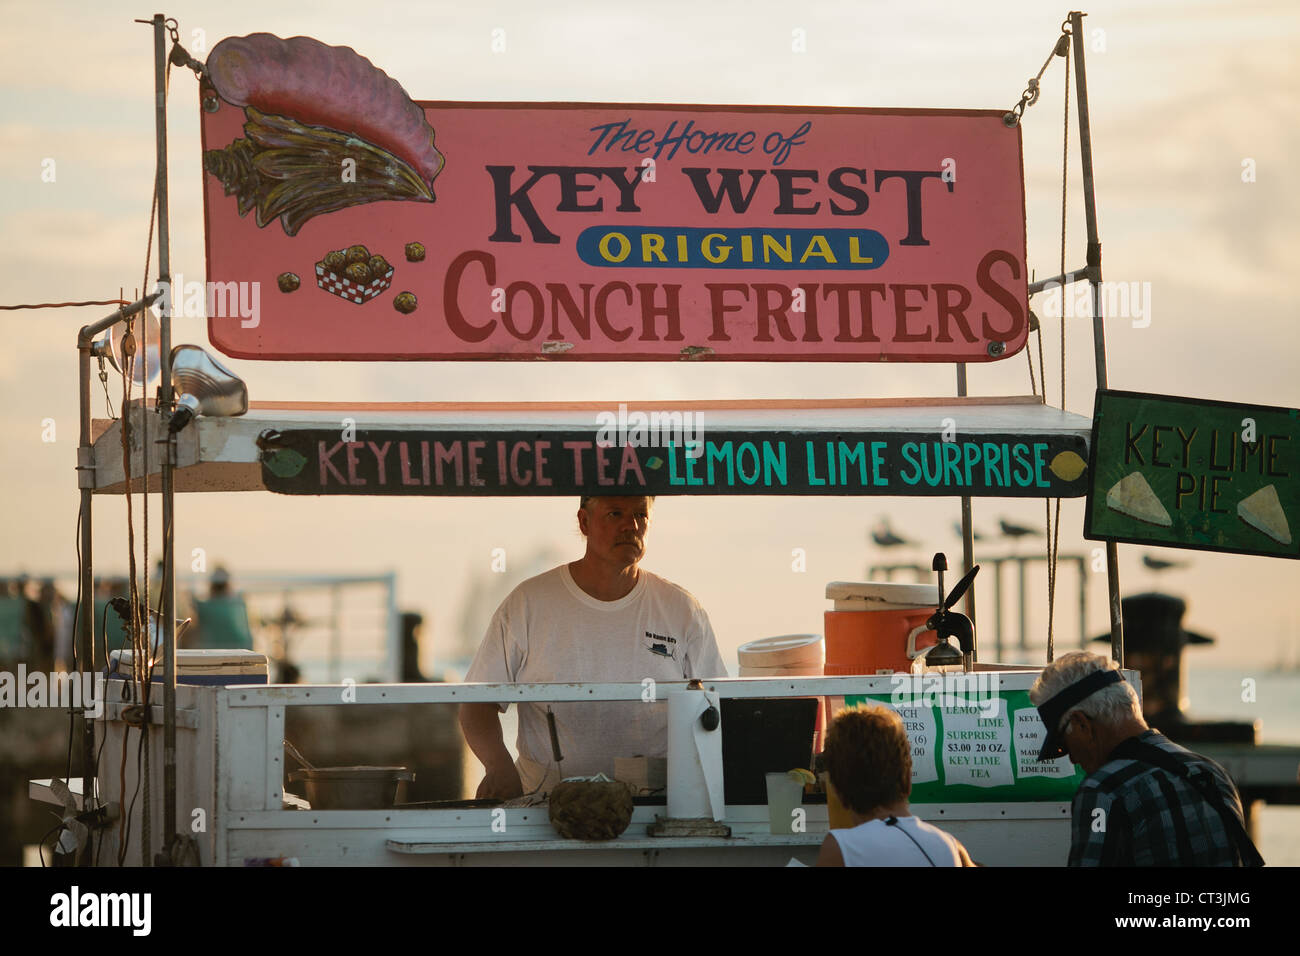 Conch Fritters and key lime pie shack at Mallory Square, Key West, Florida, USA - Stock Image